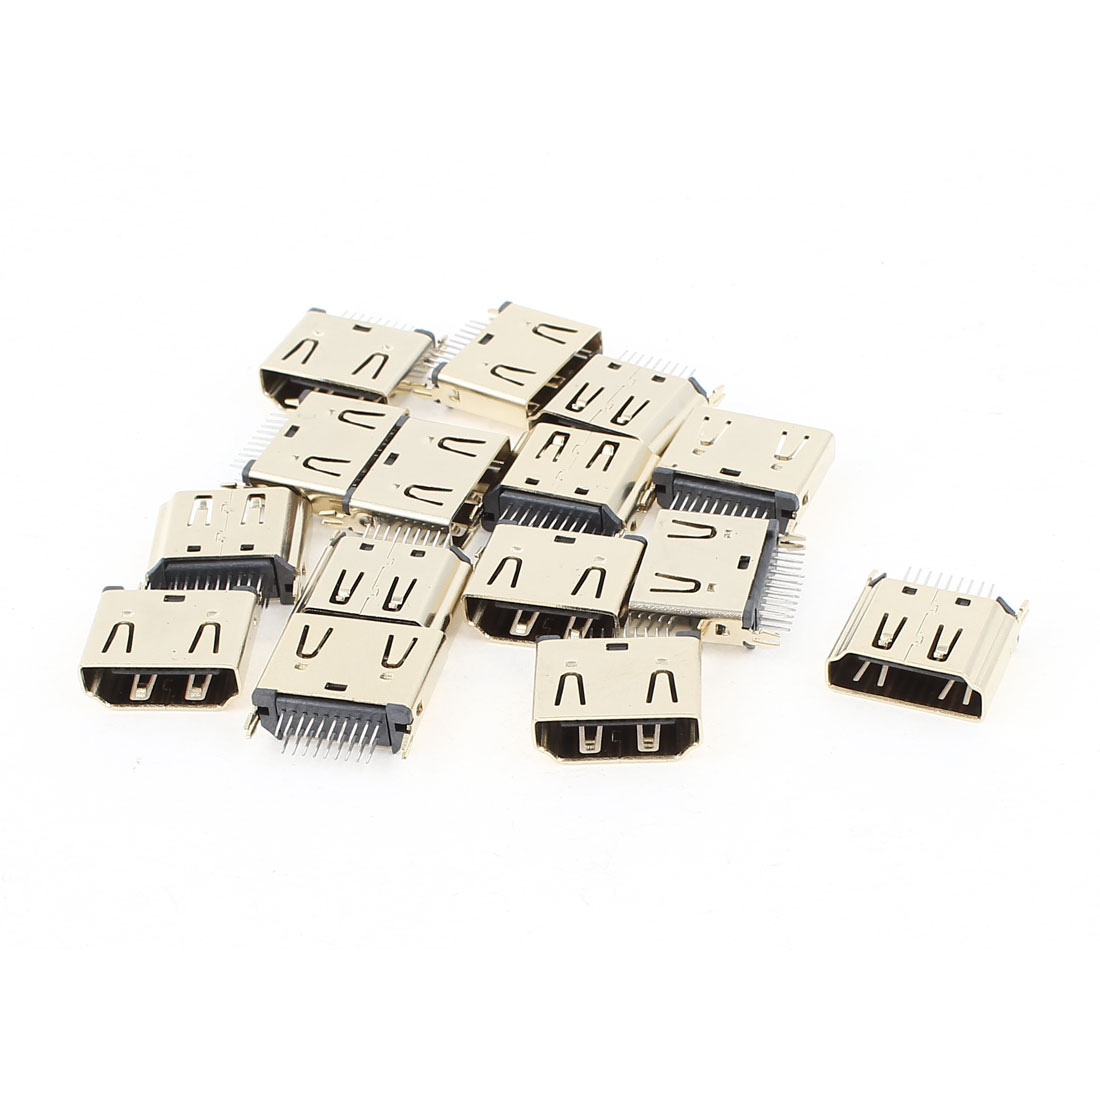 15pcs Gold Tone Mini 19Pin DIP HDMI Female Connector 180 Degree